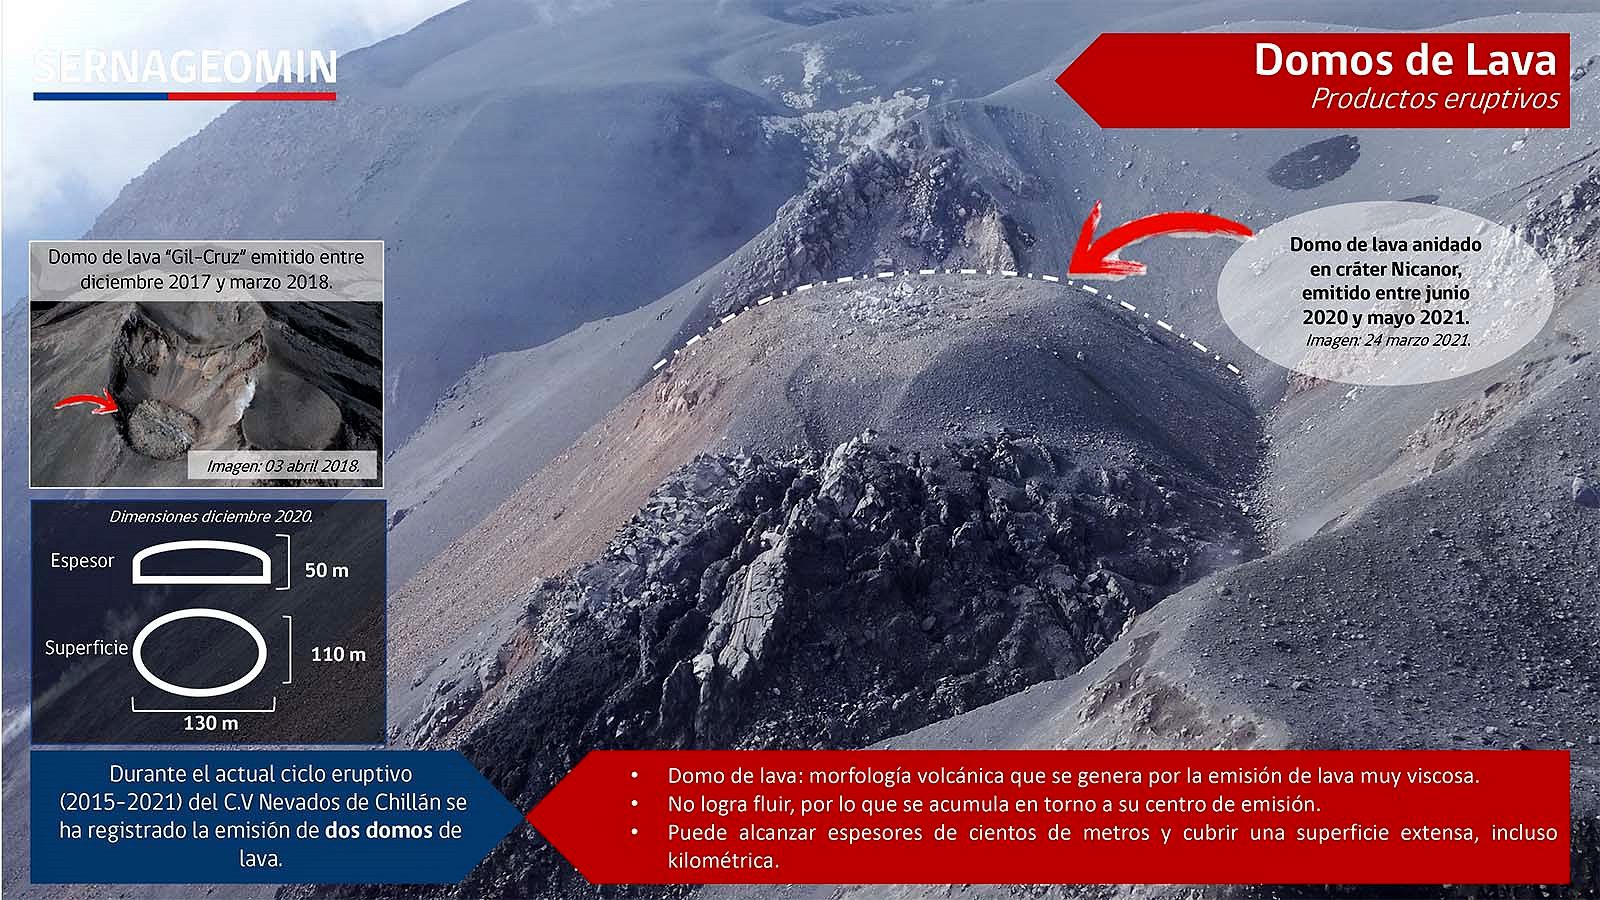 Nevados de Chillan, Nicanor crater - two domes are present in the crater - doc. Sernageomin 18.09.2021 - one click to enlarge